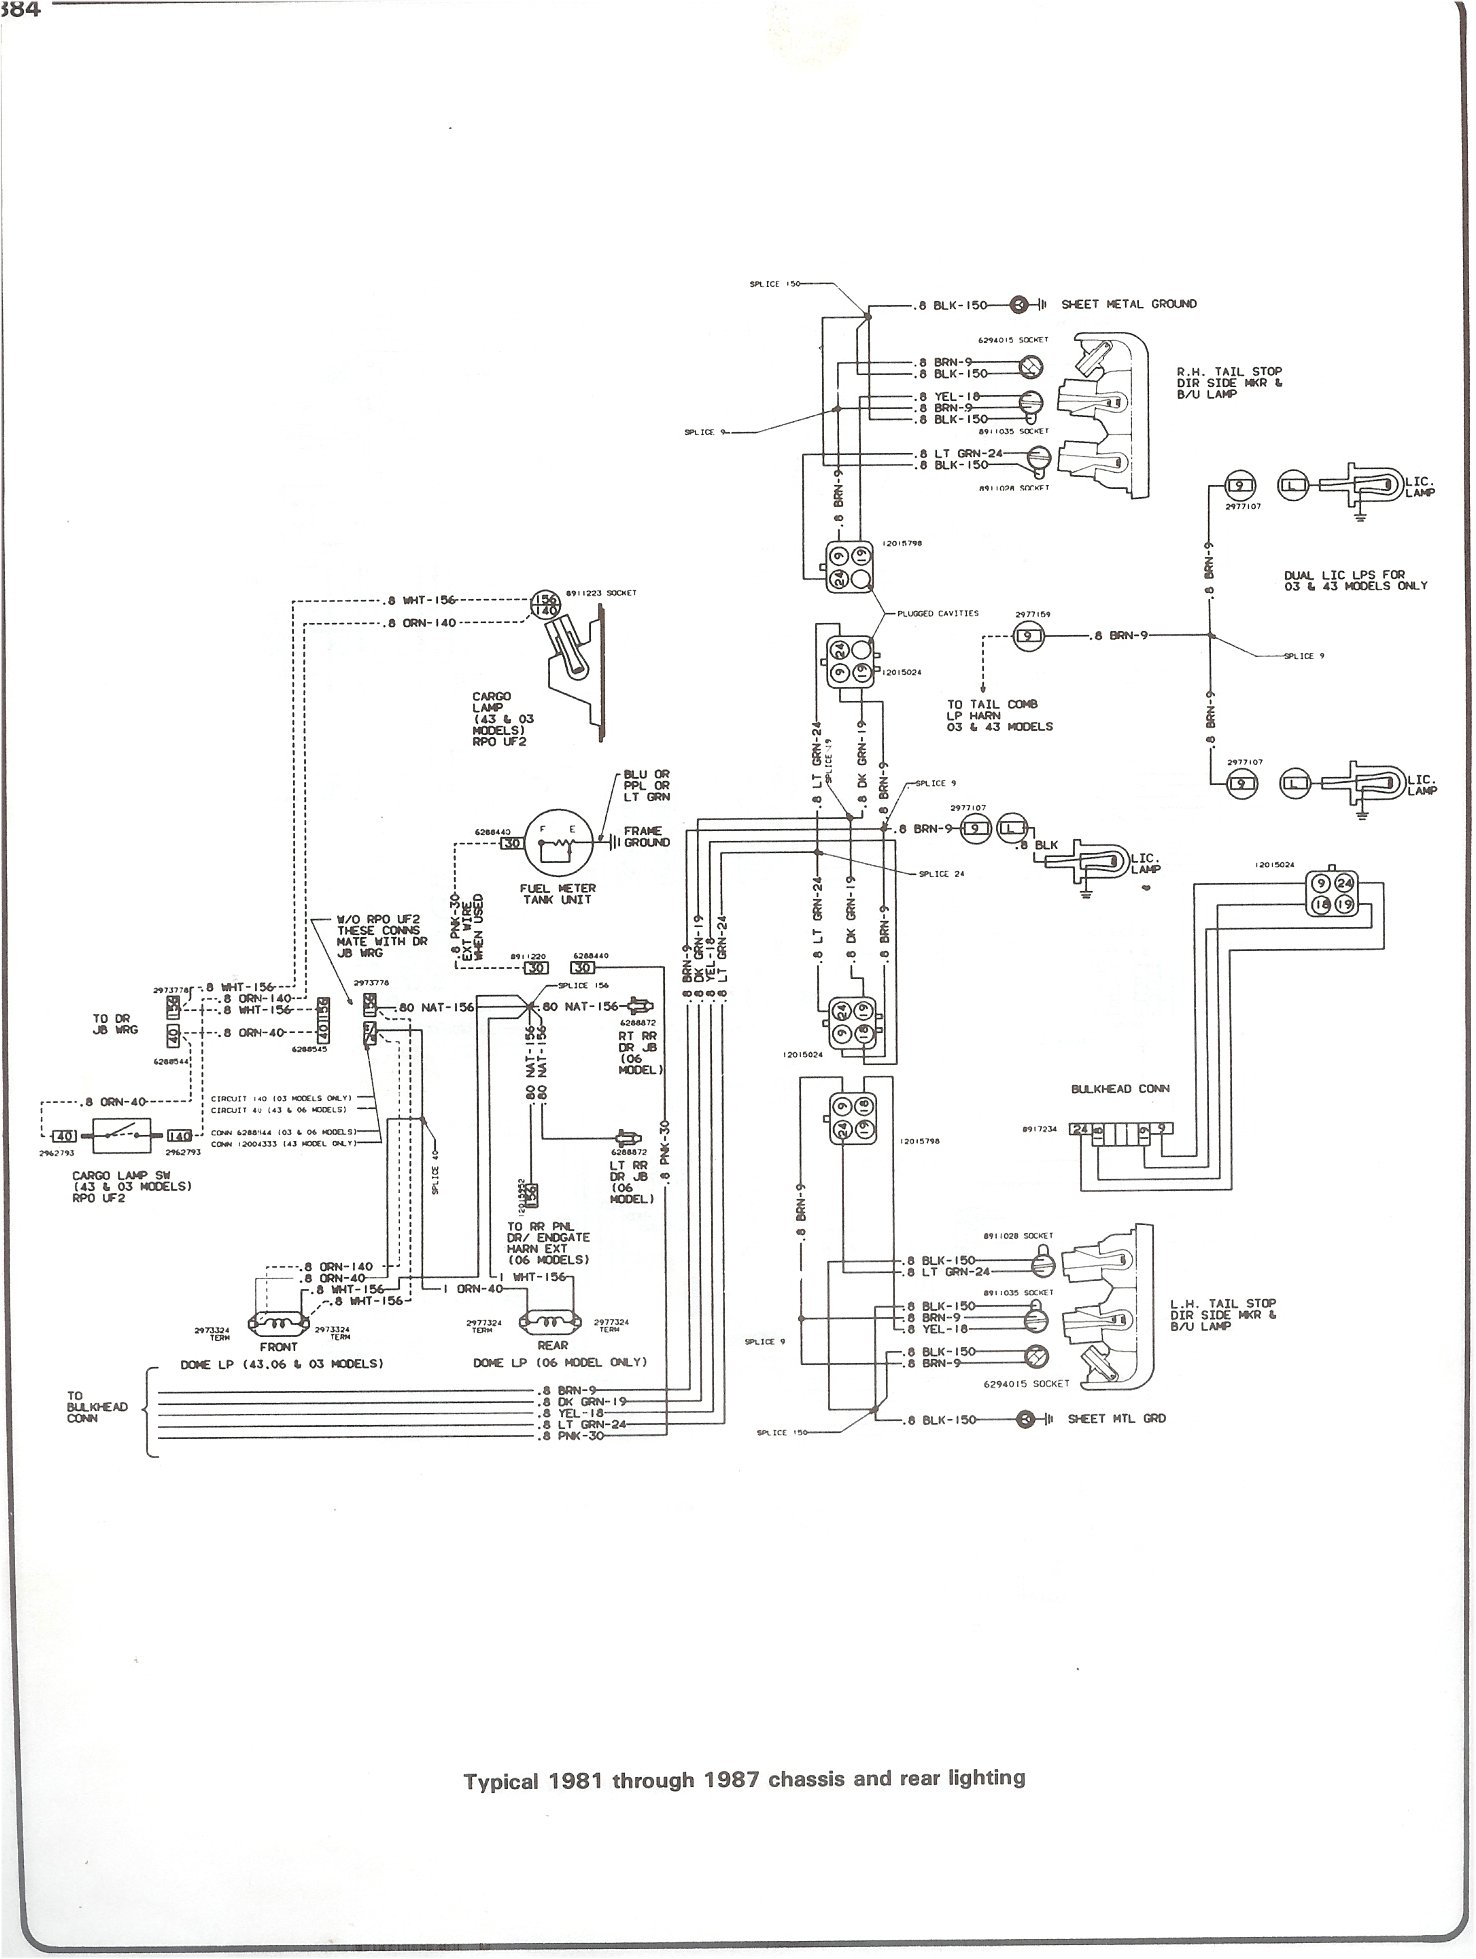 81 87_chass_rr_light complete 73 87 wiring diagrams Multi Speed Blower Motor Wiring at bayanpartner.co